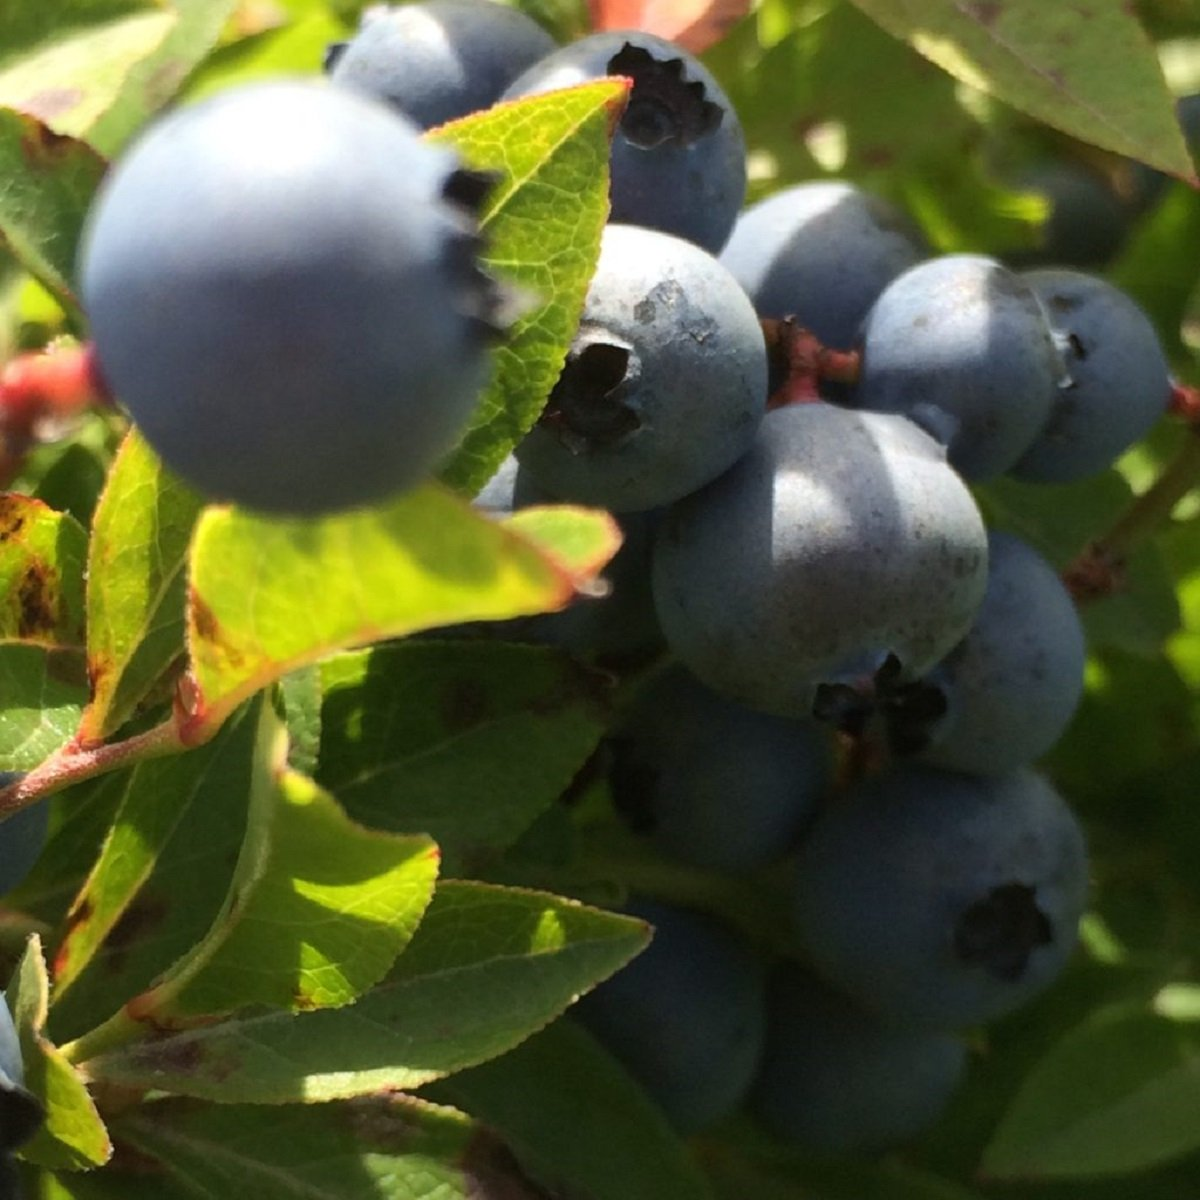 Wild Blueberries Fragrance Oil - 2 LB - for Candle & SOAP Making by VIRGINIA CANDLE SUPPLY - Free S&H in USA by Virginia Candle Supply